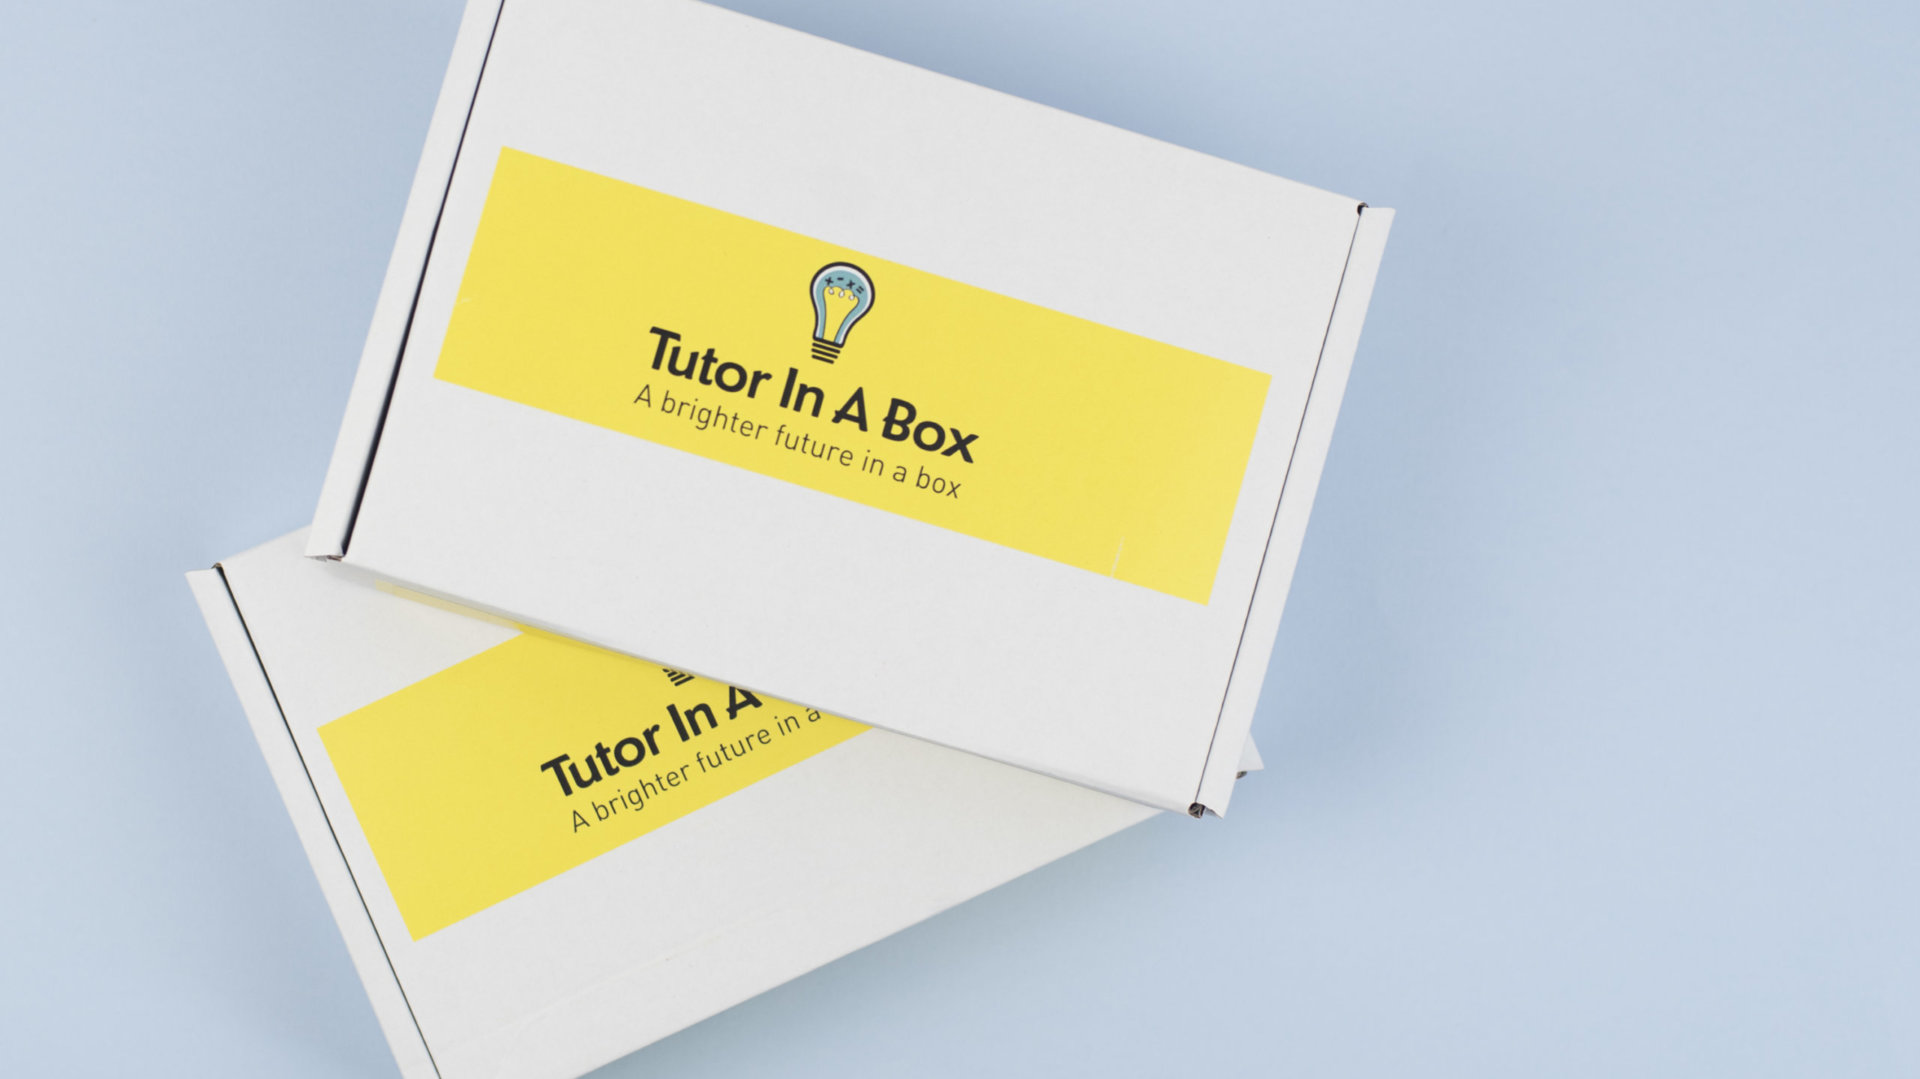 Tutor In A Box